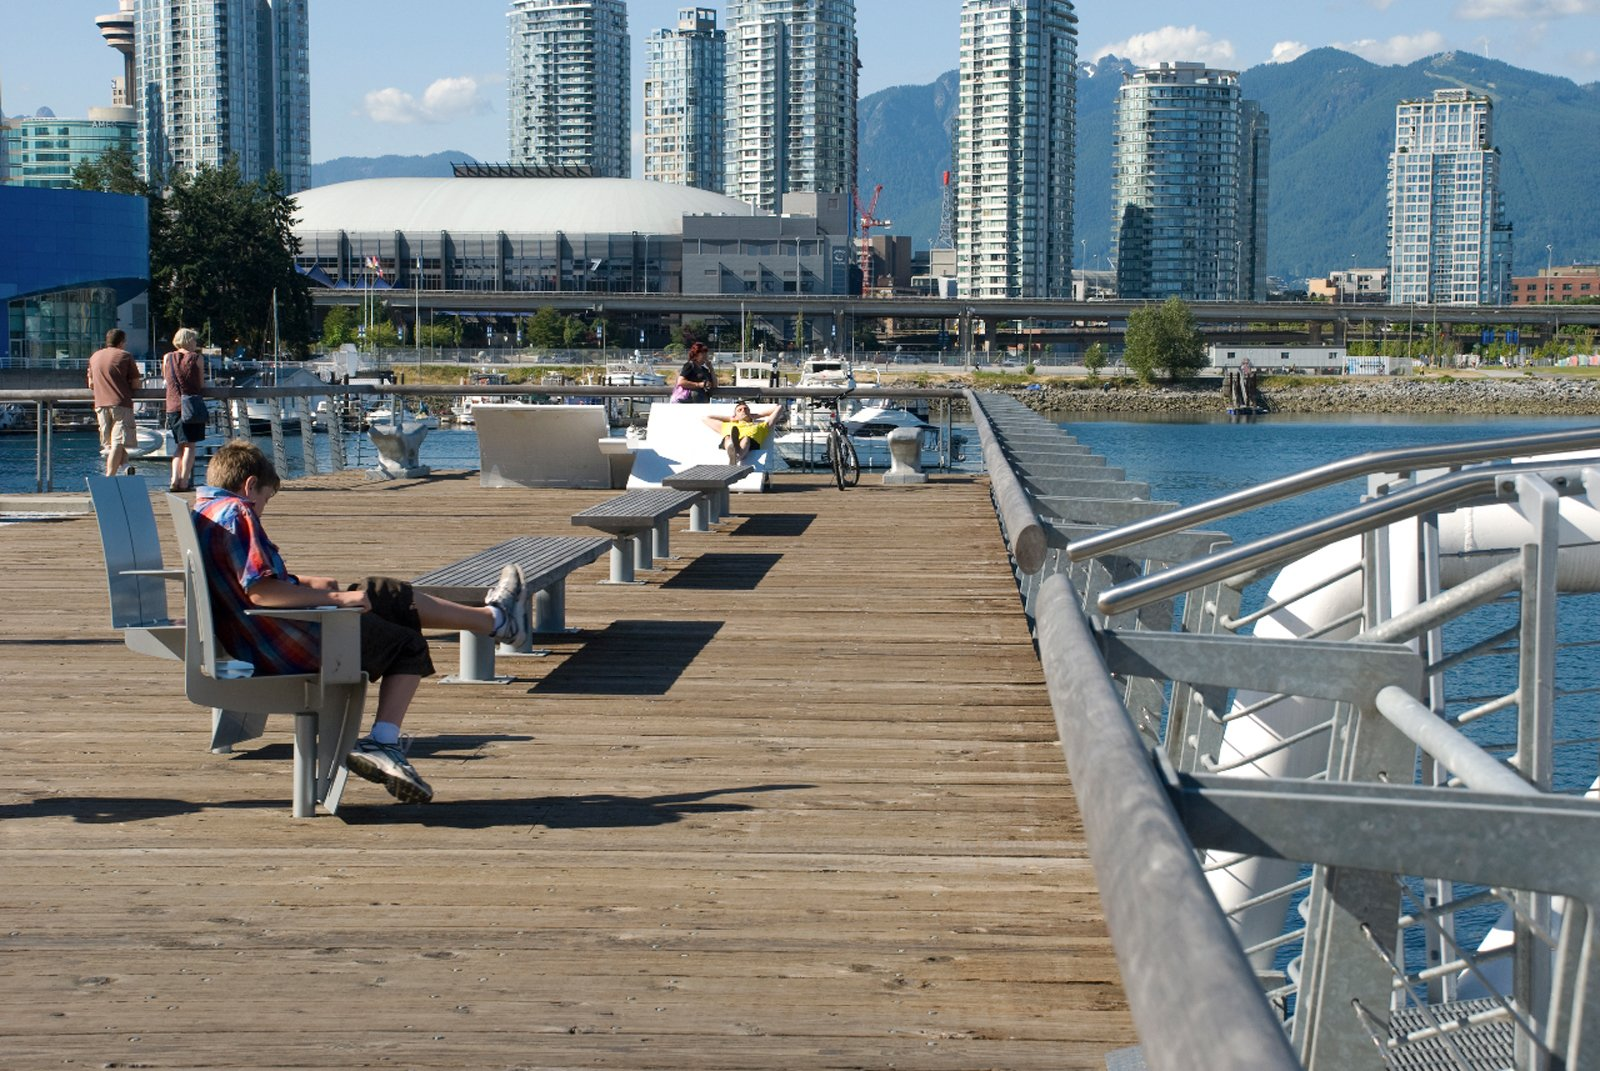 Olympic Village by PWL  A mix of street furniture designed for the Olympic Village in Vancouver offers swiveled chairs (all comforts of home right on the waterfront!) with oversized white loungers. Both get plenty of use by people looking to either relax or take in the urban waterfront sites on the newly designed boardwalk.  Street Furniture Your City Wishes it Had by Tim Newcomb from Great Designs from Vancouver